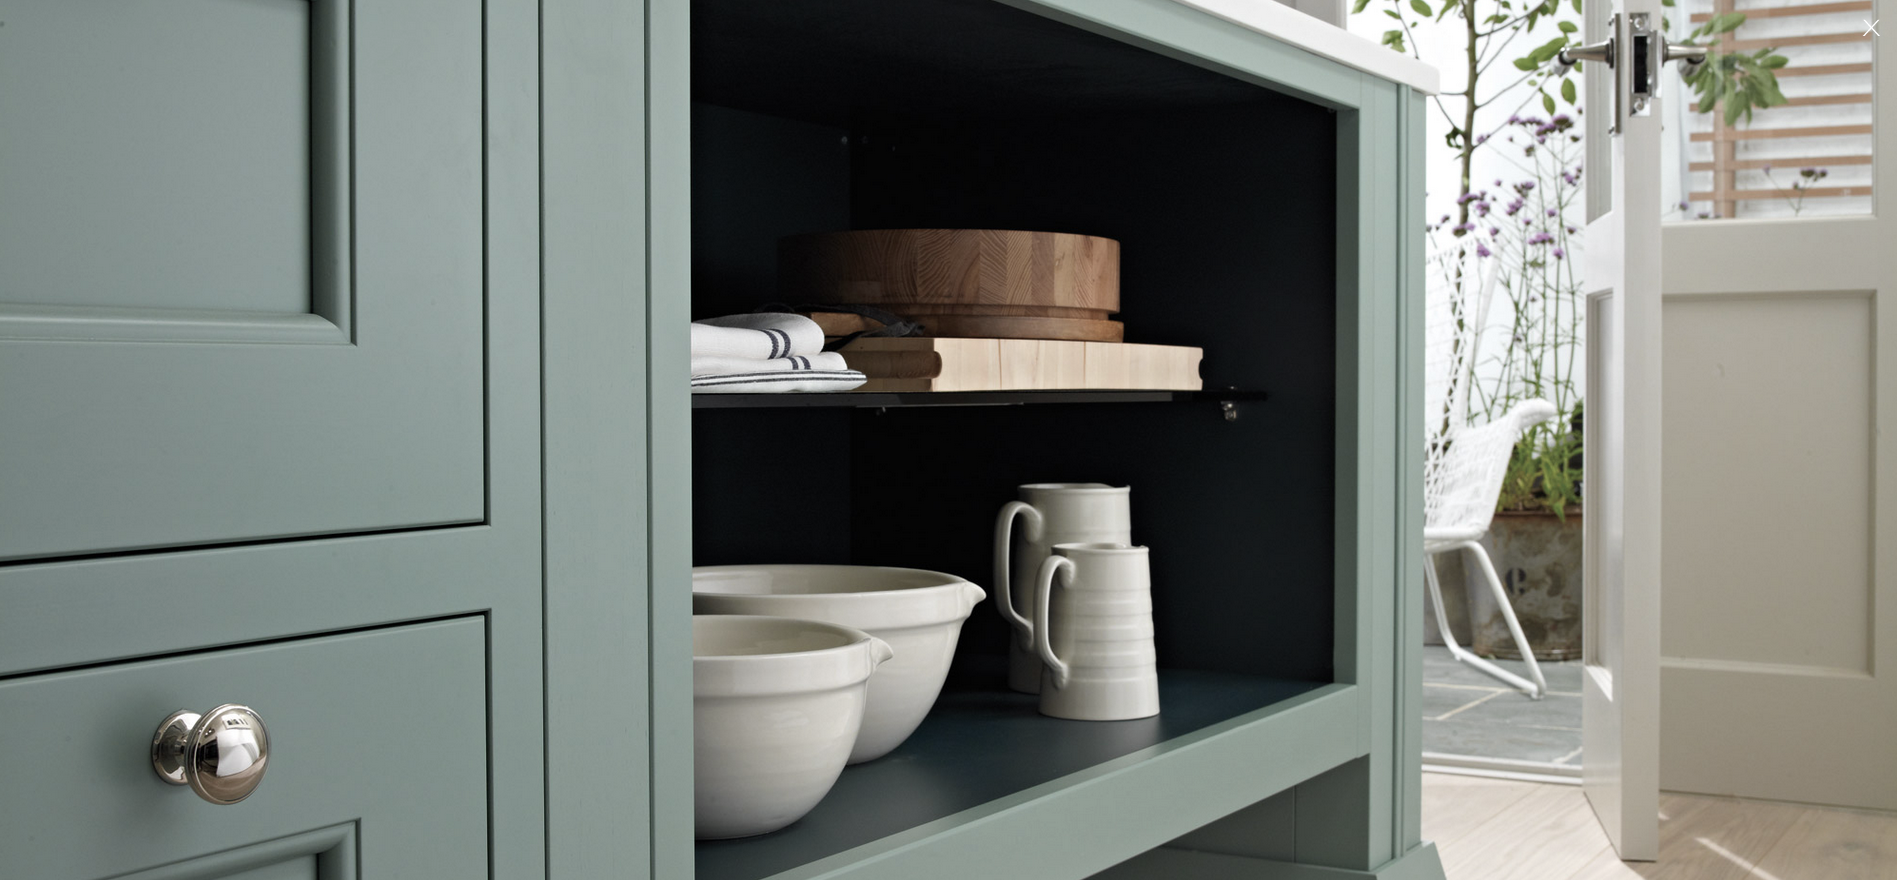 Improving Storage - Unique cabinetry and storage remains one of the best solutions for digital design trends for 2018. One of the biggest problems with kitchen cabinetry that has just basic shelves is that it doesn't lead to organization and there's plenty of wasted space inside each unit. Installing pull out drawers, storage racks and planning what you will store in each unit and drawer accordingly is one of the best ways that you can efficiently use of your space.